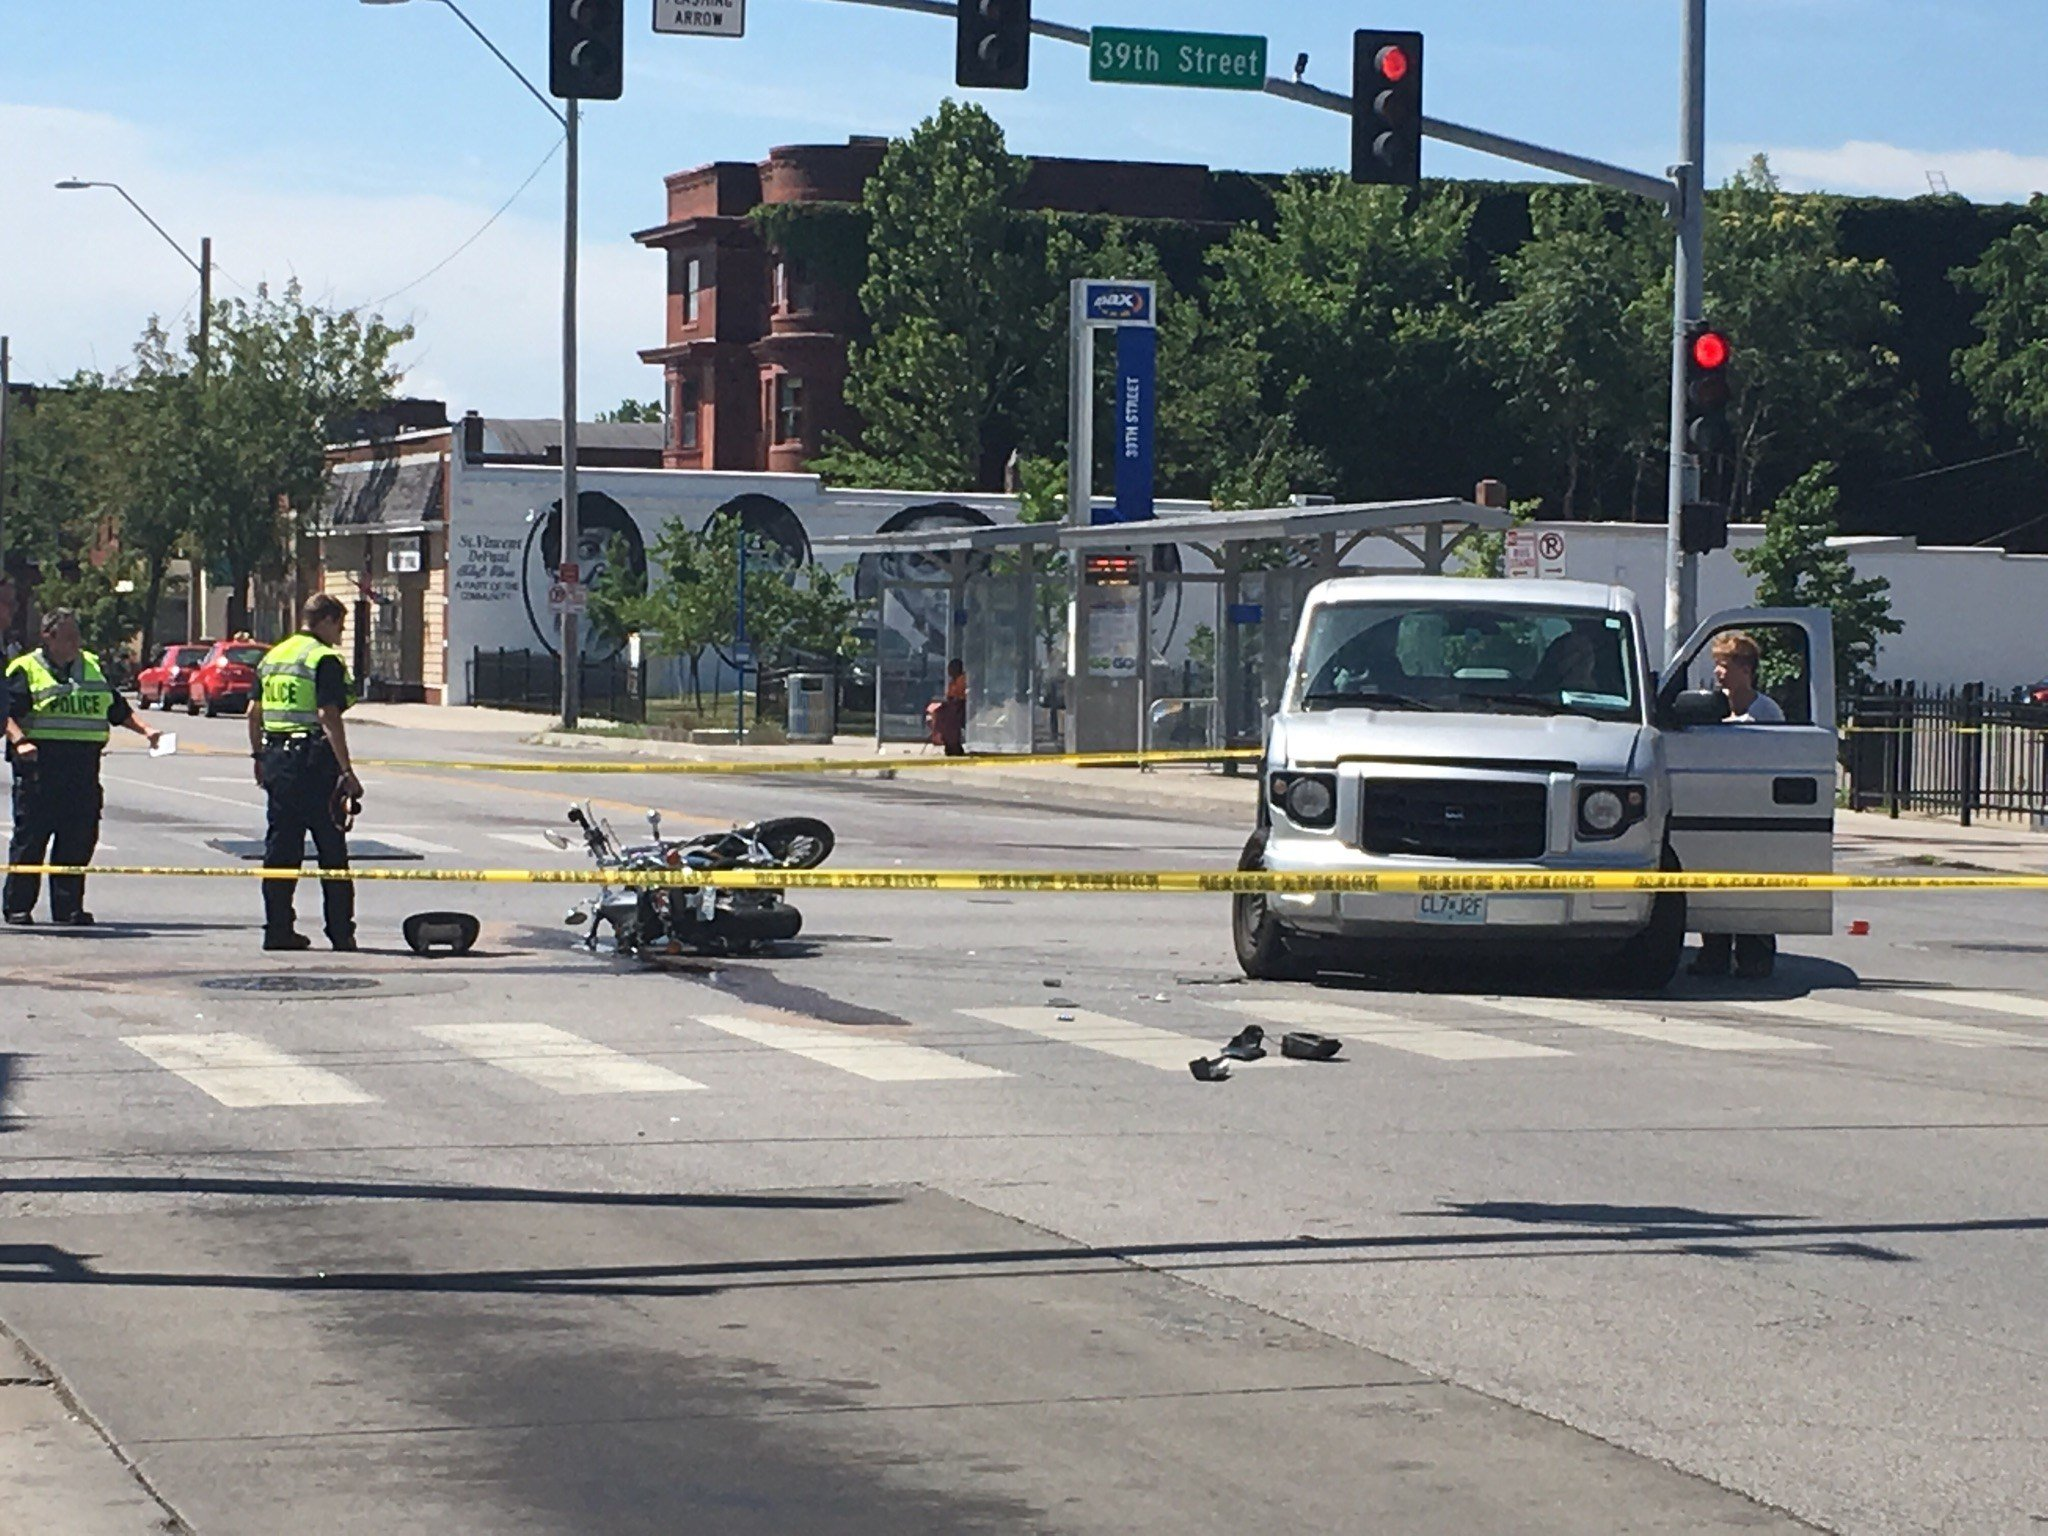 Since 2012, fatal motorcycle crashes have resulted in 475 deaths, with 122 of those deaths occurring in 2016 alone. (Bill Linsay - KCTV5)